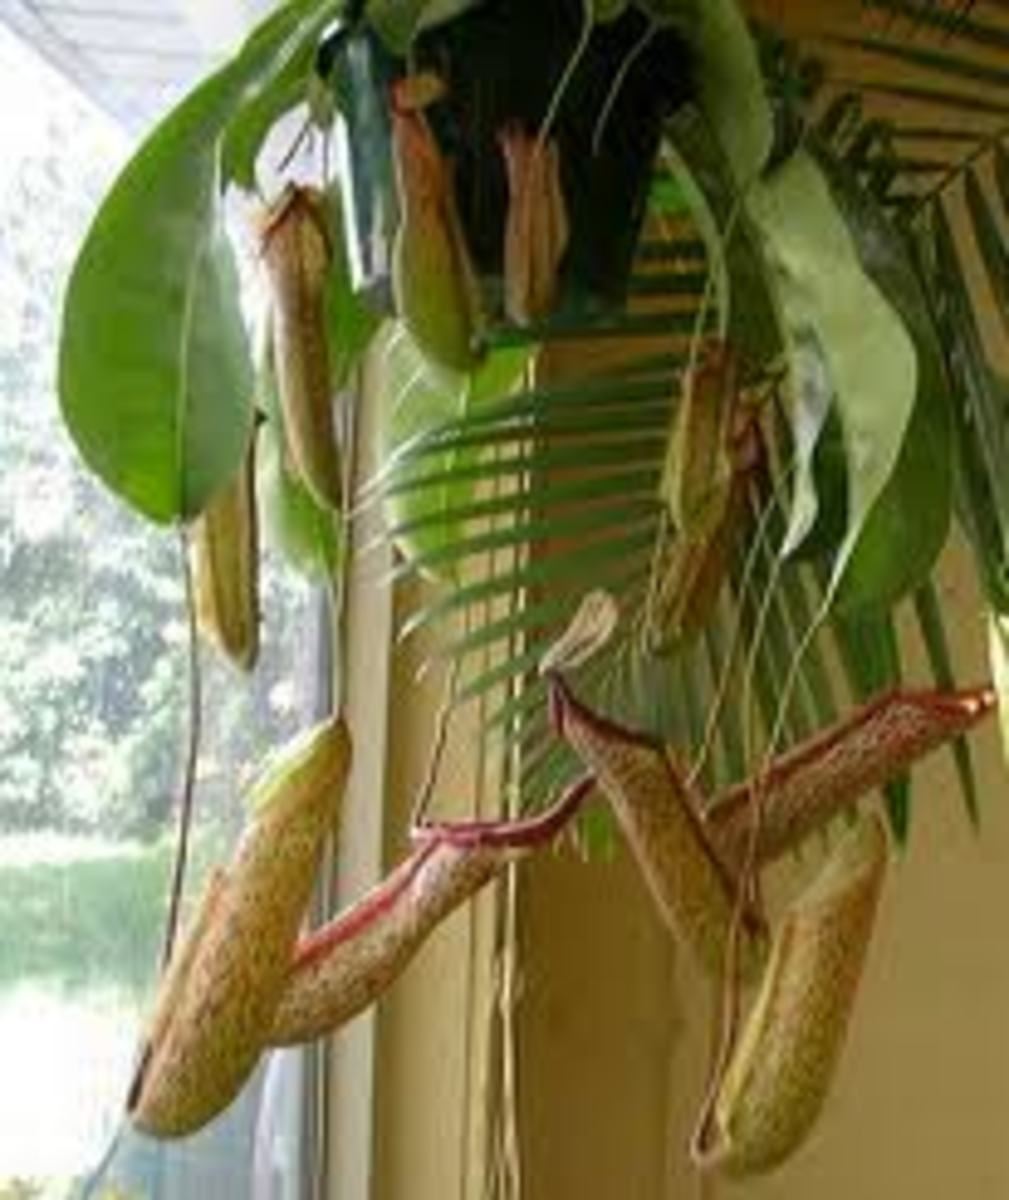 A nepenthes cultivar, probably a hybrid.